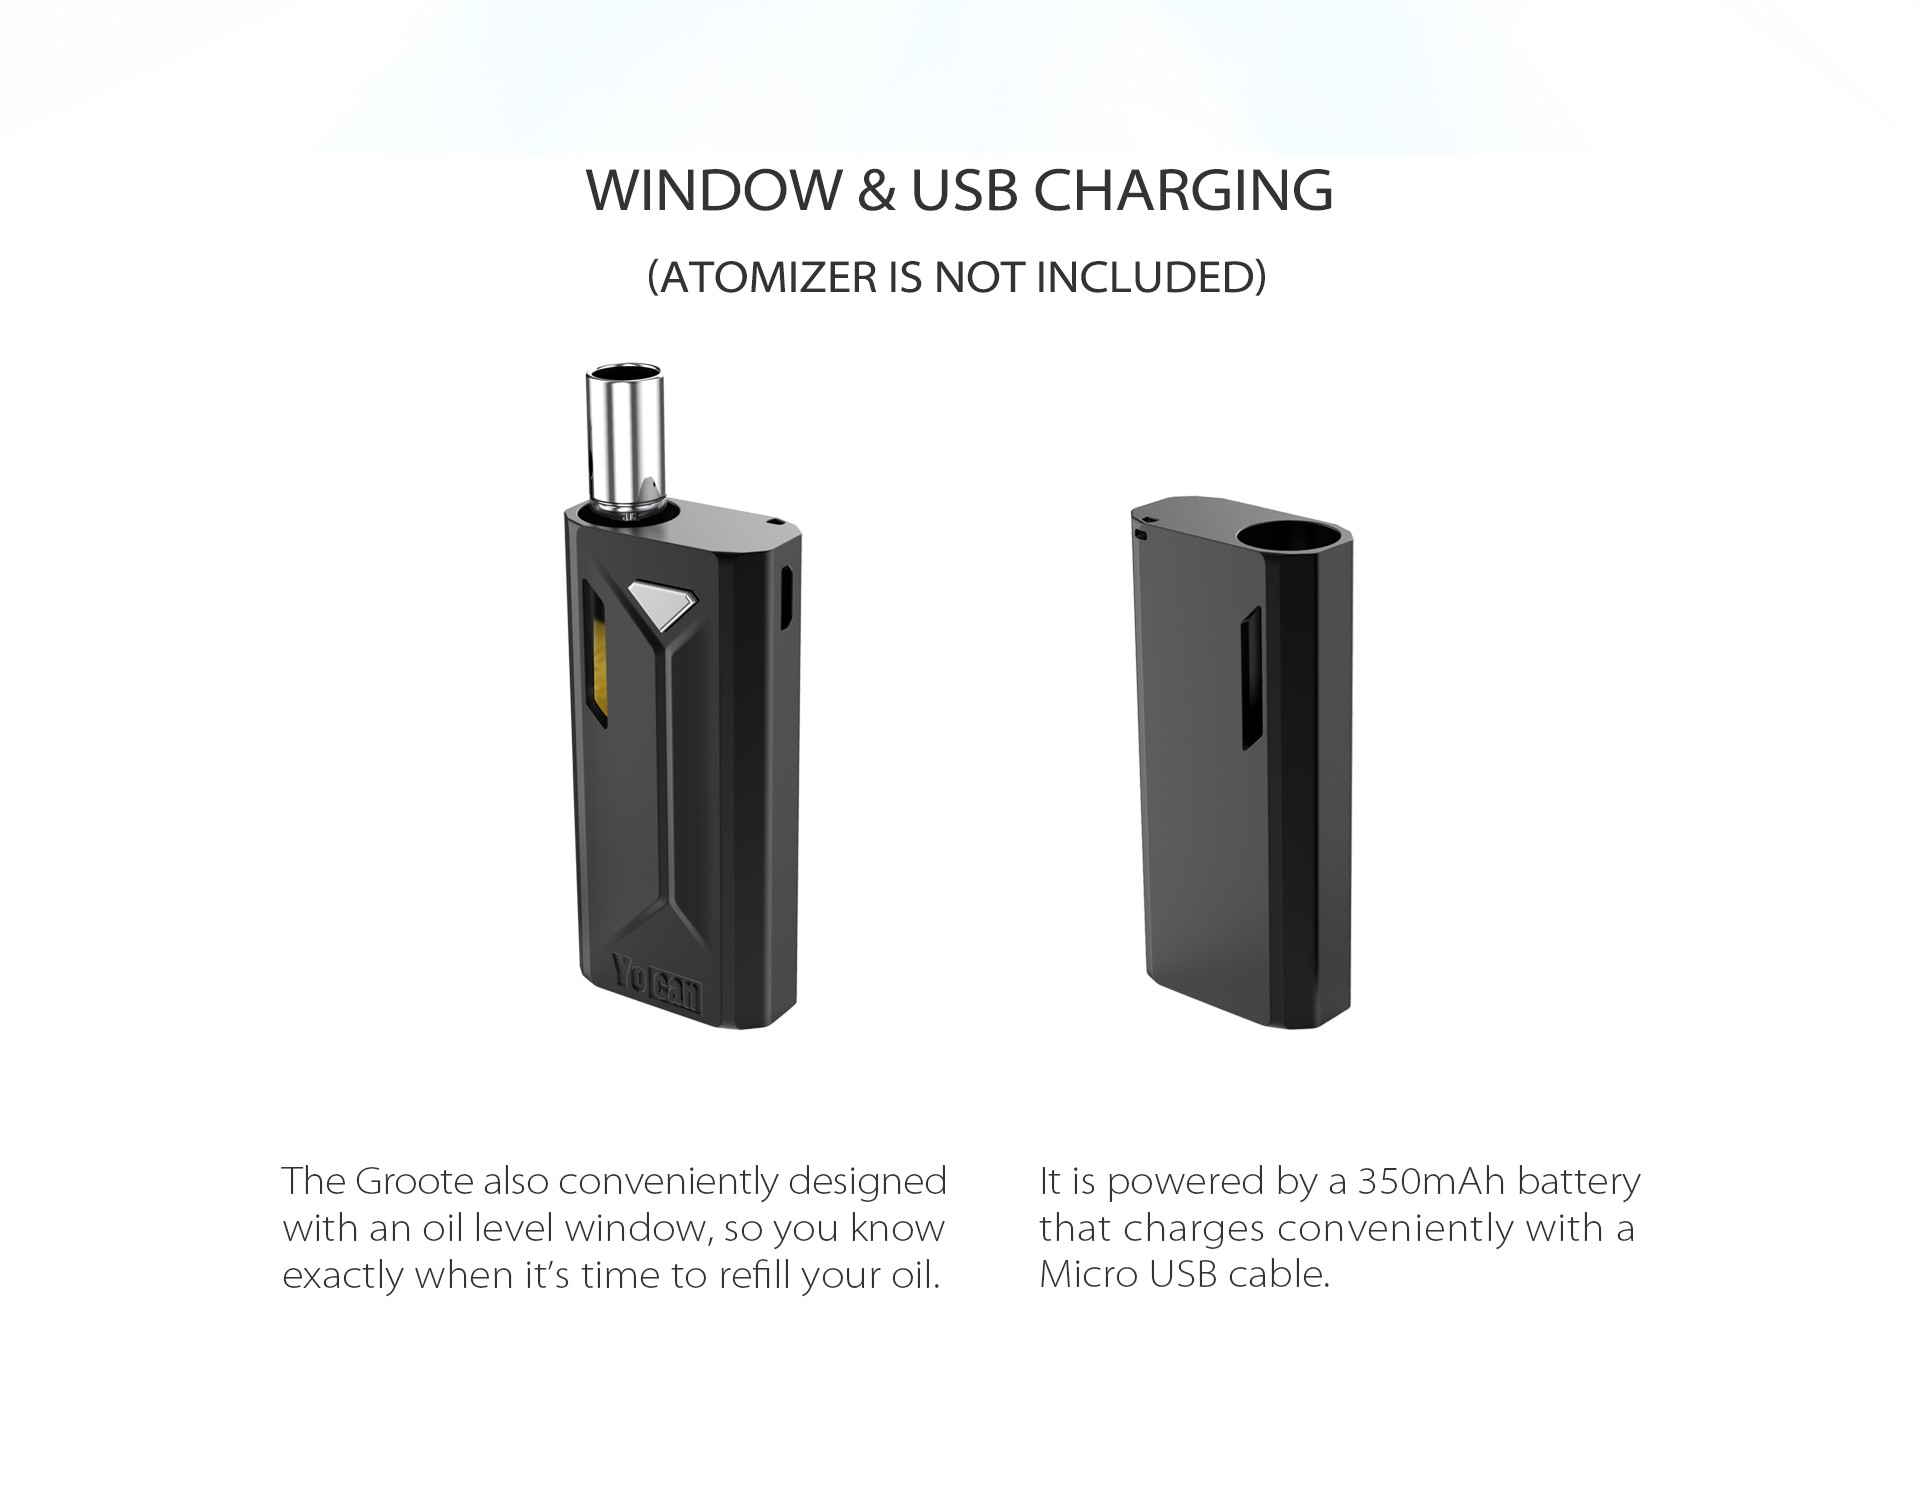 The Yocan Groote box mod battery designed with an oil level window, and use micro USB chaging..